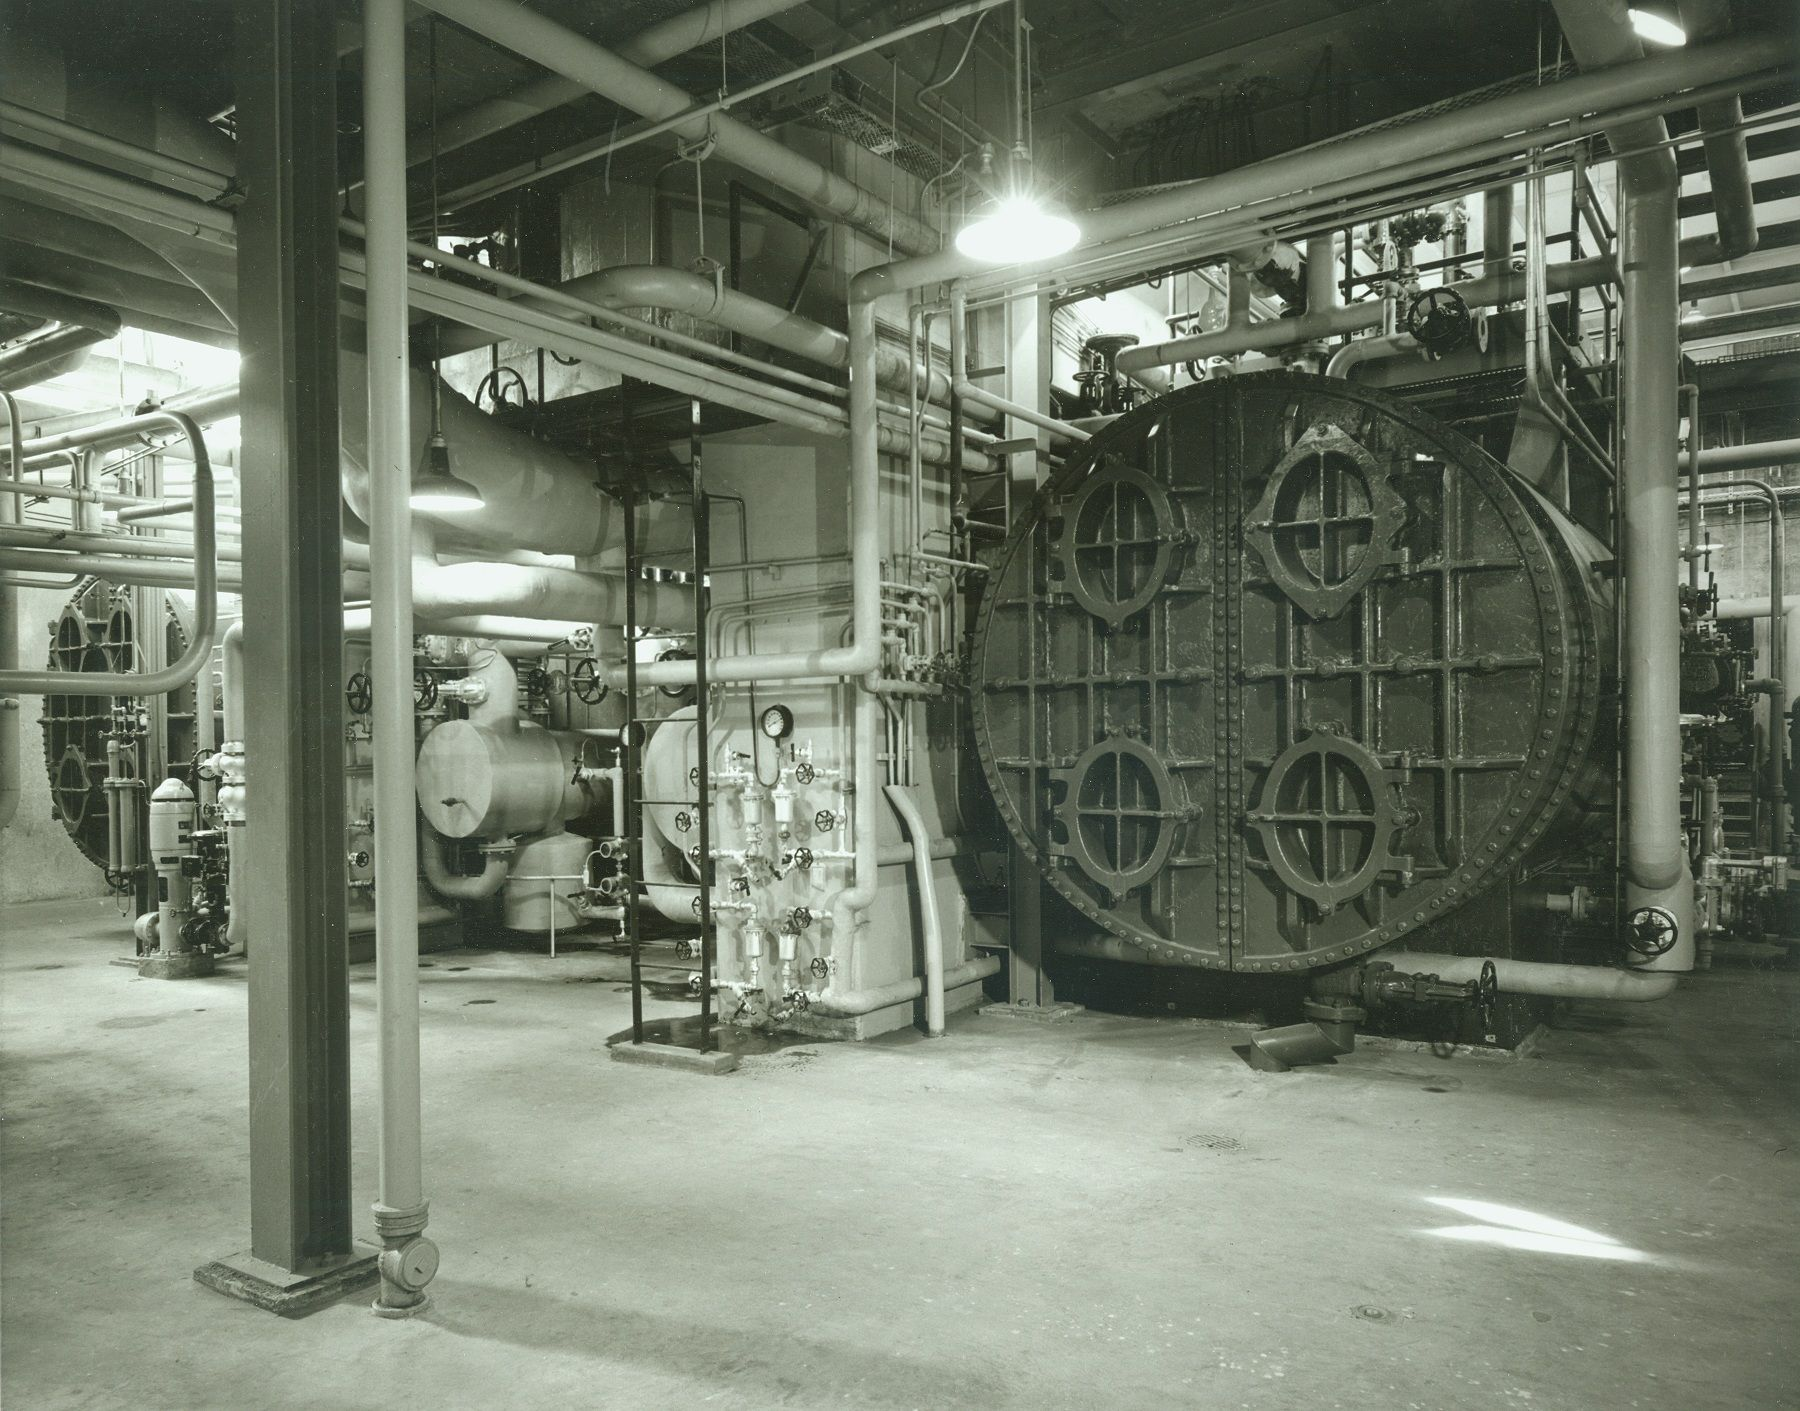 ThrowbackThursday Check out this old photo of a municipal power